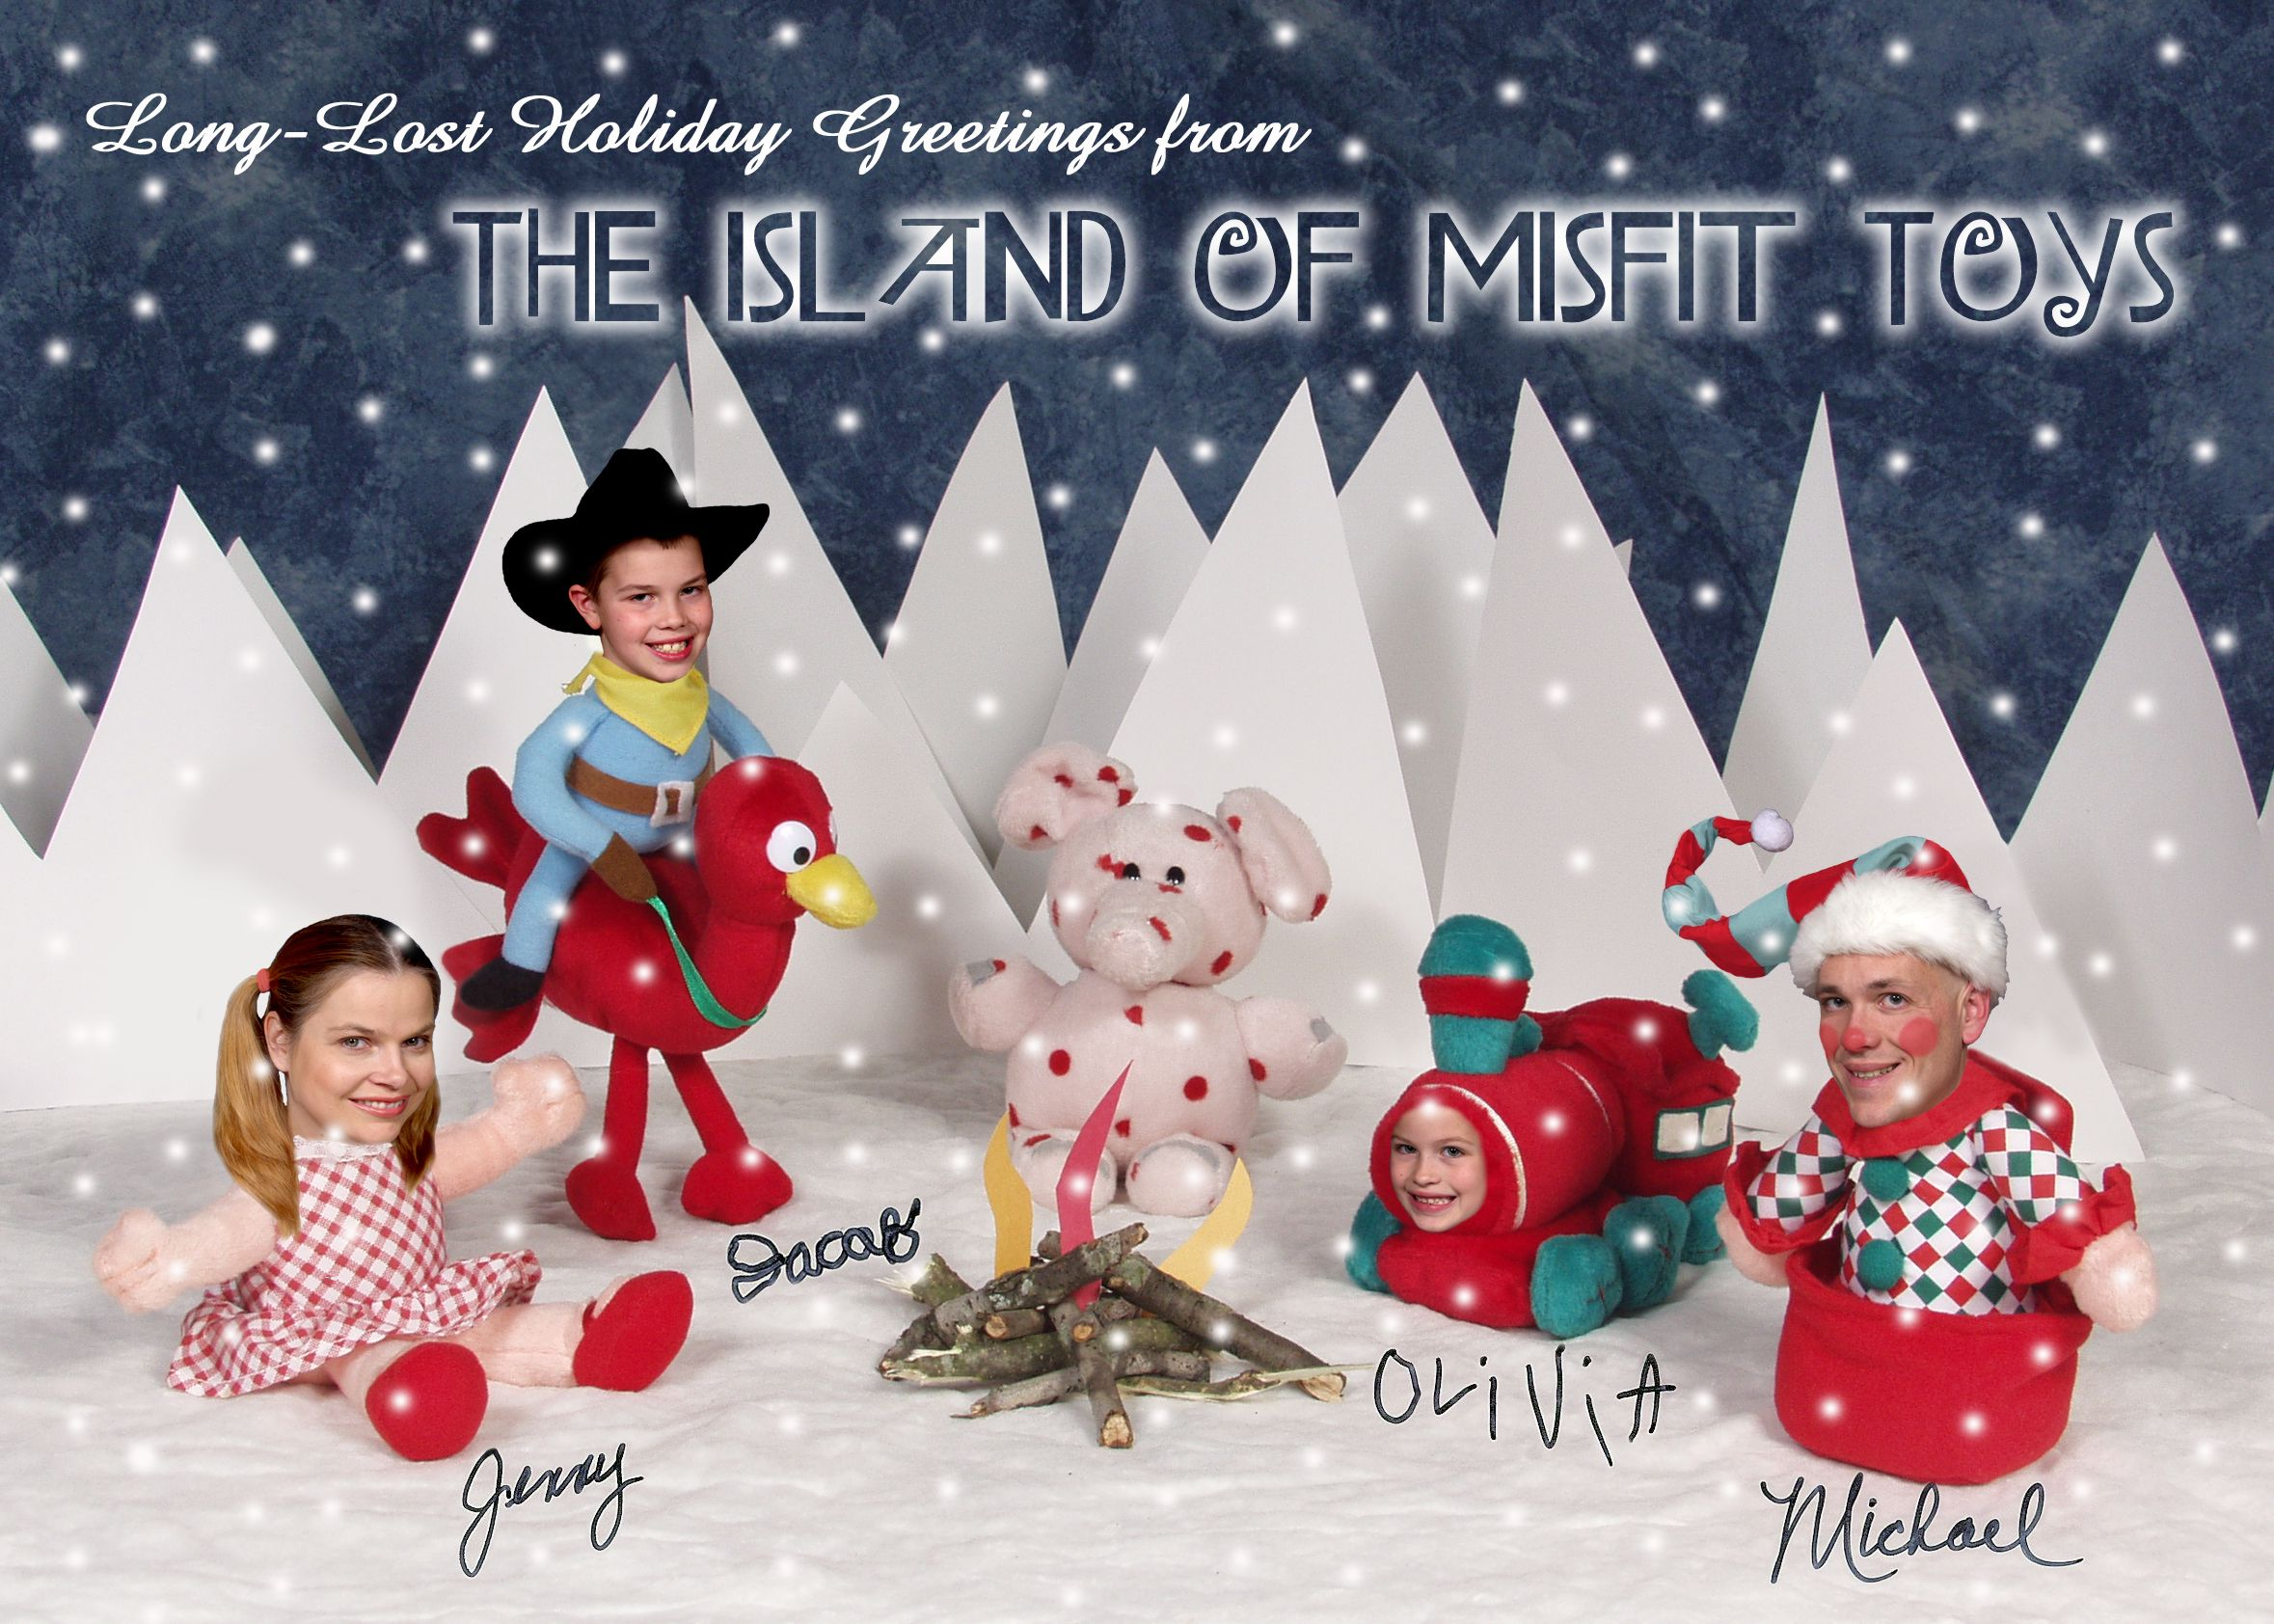 2006 The Island Of Misfit Toys Stout Family Christmas Cards